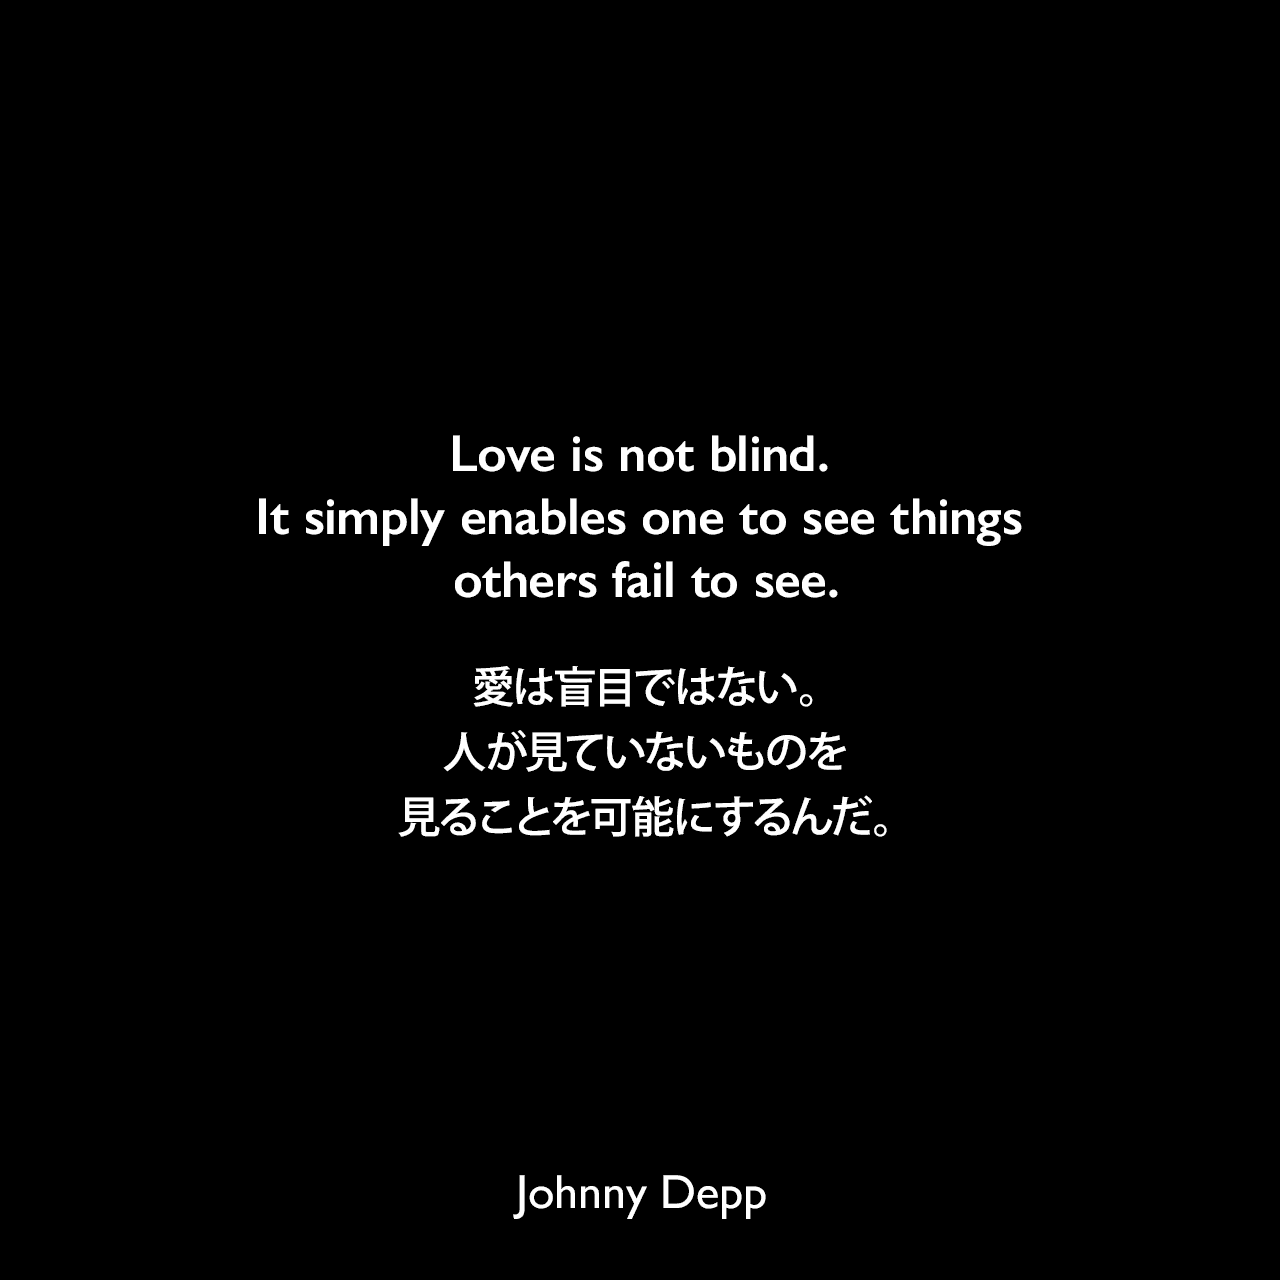 Love is not blind. It simply enables one to see things others fail to see.愛は盲目ではない。人が見ていないものを見ることを可能にするんだ。Johnny Depp